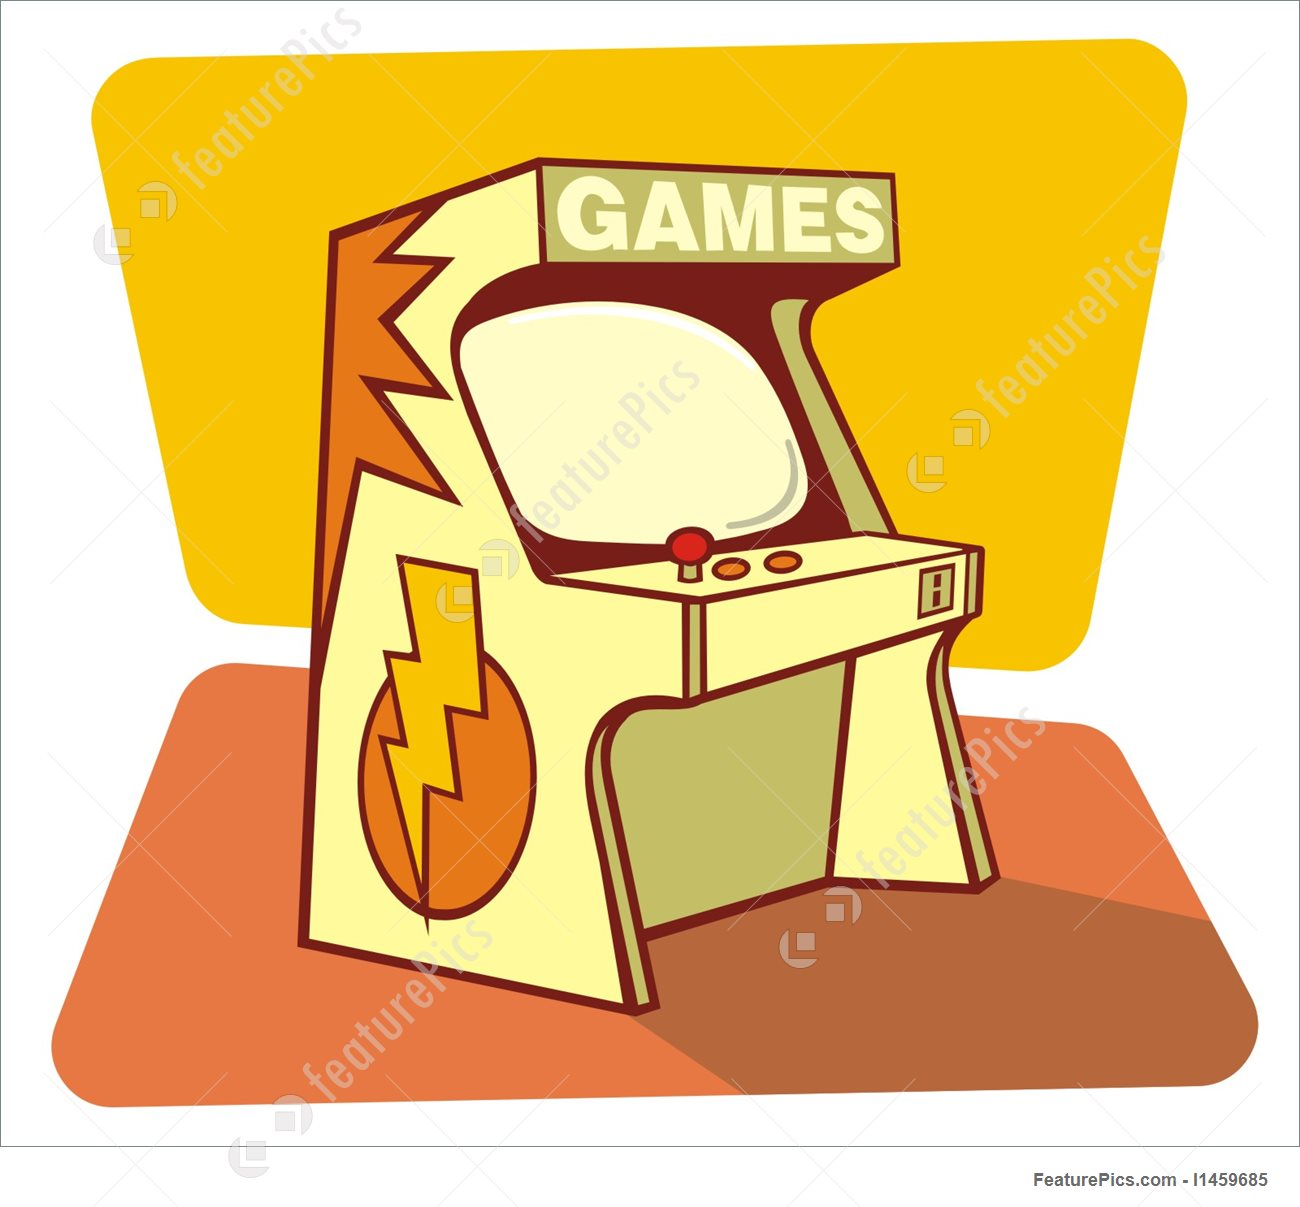 Arcade clipart game console. Drawing at getdrawings com